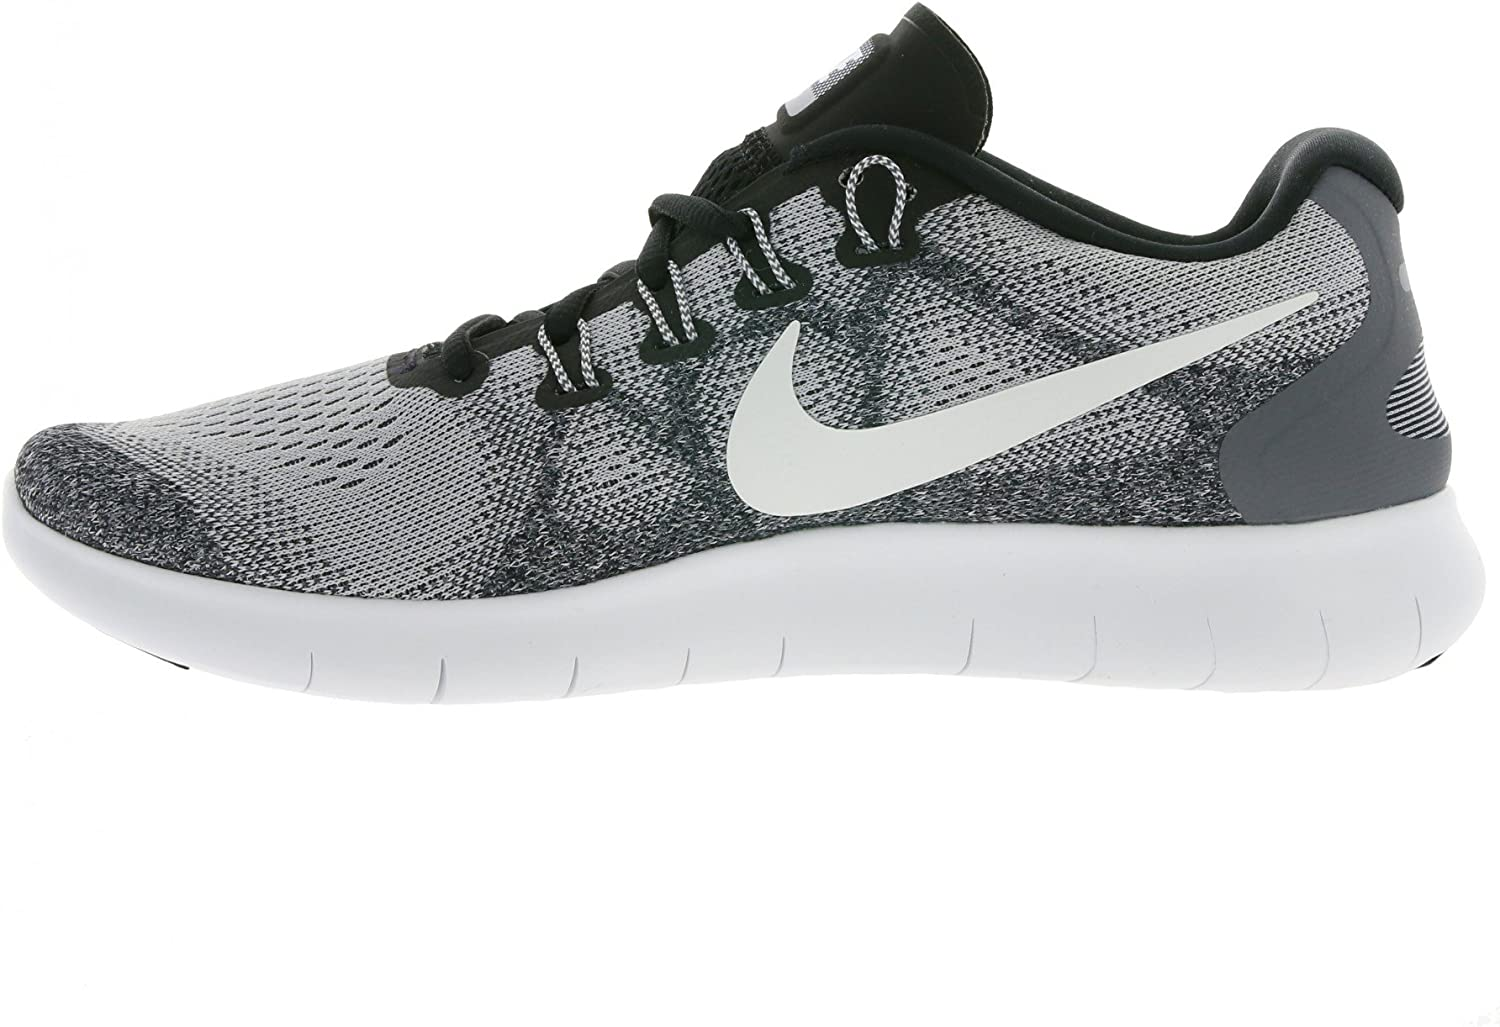 Nike Free Run 2017 Running Shoes Gray 880839 002 Taille 42 Amazon Co Uk Sports Outdoors